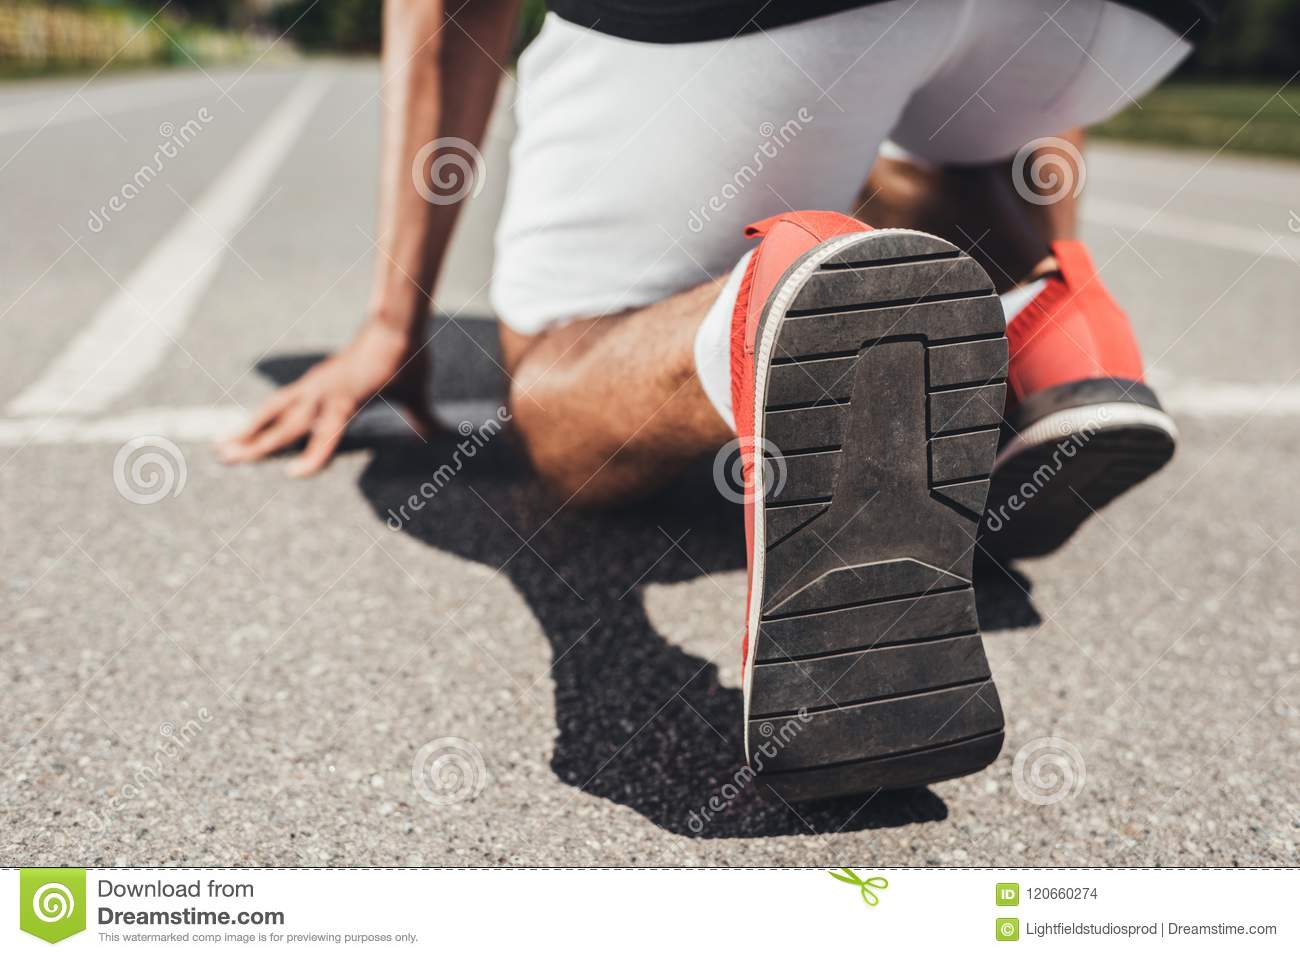 close up view of running shoes of male sprinter in starting position